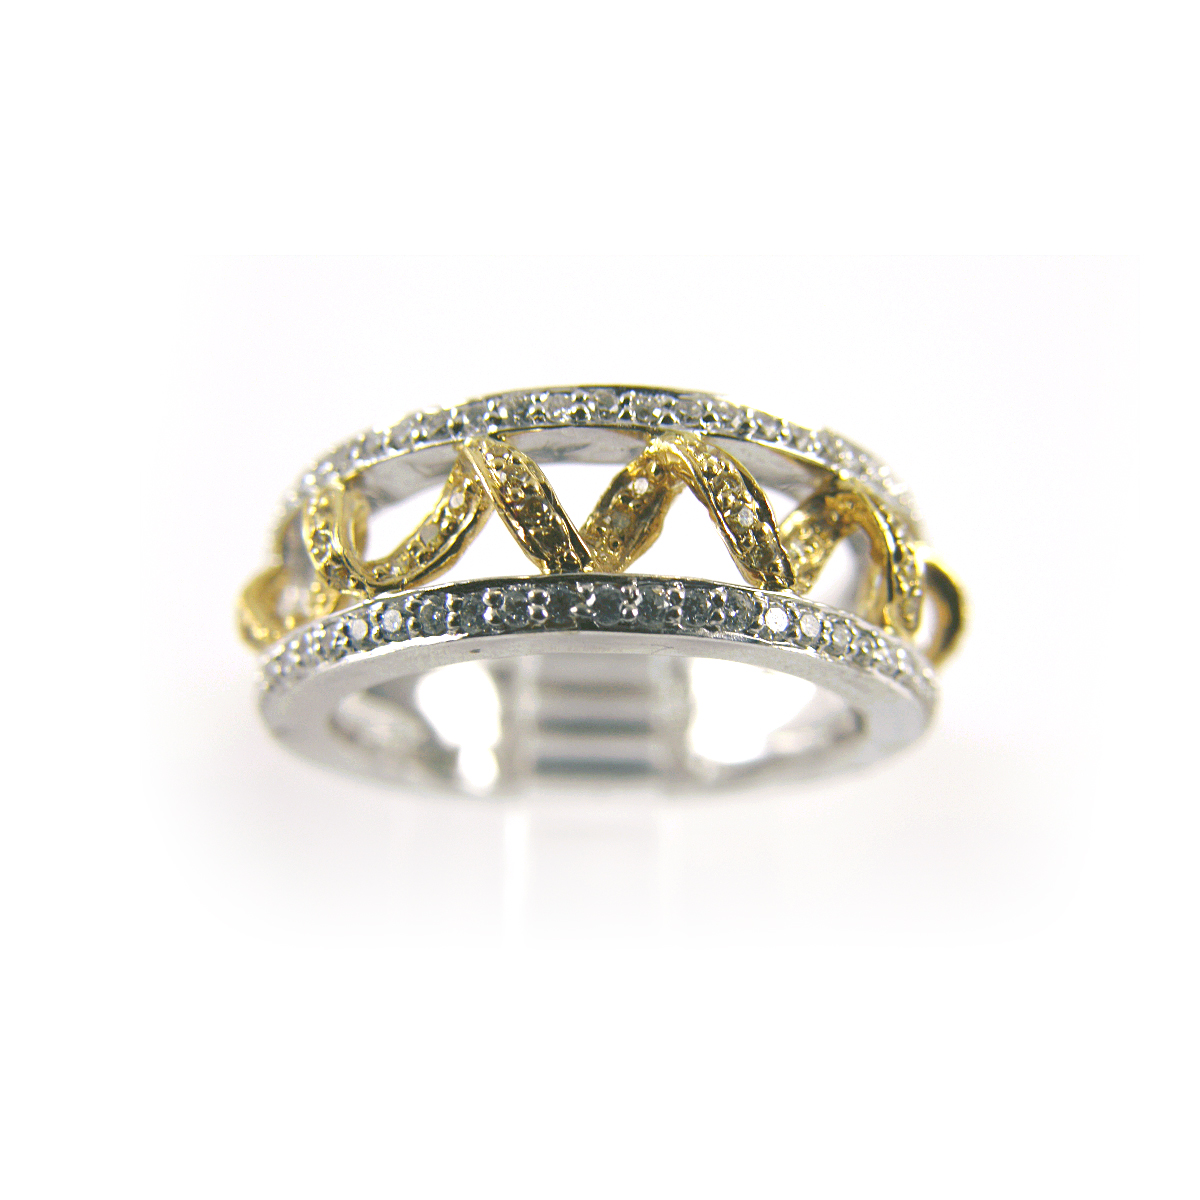 18 Karat Two Tone Yellow and White Diamond Band